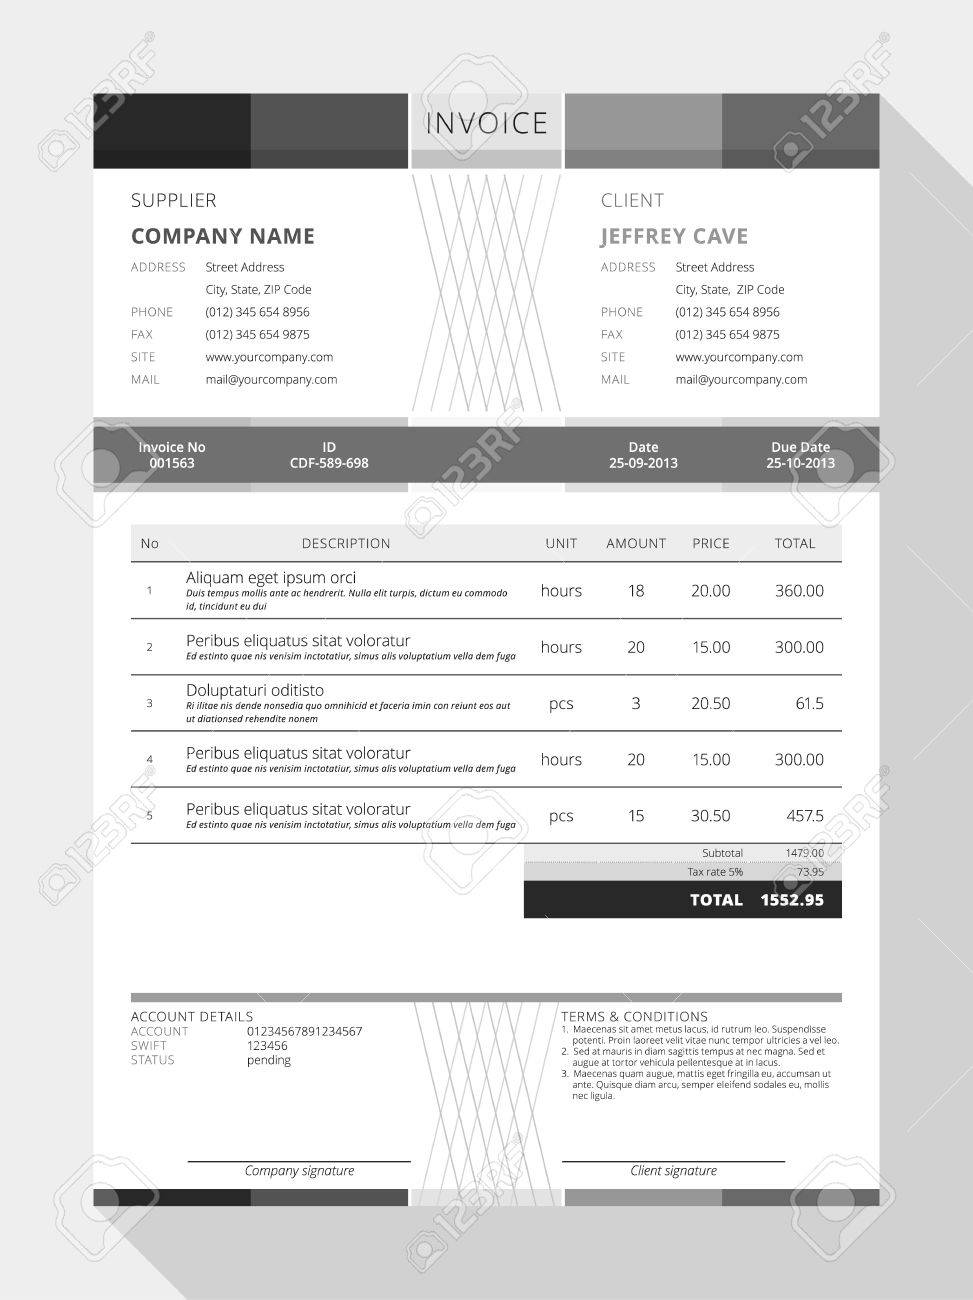 Massenargcus  Unusual Design An Invoice  Professional Graphic Design Invoice  With Goodlooking Vector Customizable Invoice Form Template Design Vector   Design An Invoice With Attractive Send Paypal Invoice Also Quickbooks Invoice In Addition Invoice Paypal And Invoice Financing As Well As Car Invoice Price Additionally Invoice Forms From Happytomco With Massenargcus  Goodlooking Design An Invoice  Professional Graphic Design Invoice  With Attractive Vector Customizable Invoice Form Template Design Vector   Design An Invoice And Unusual Send Paypal Invoice Also Quickbooks Invoice In Addition Invoice Paypal From Happytomco